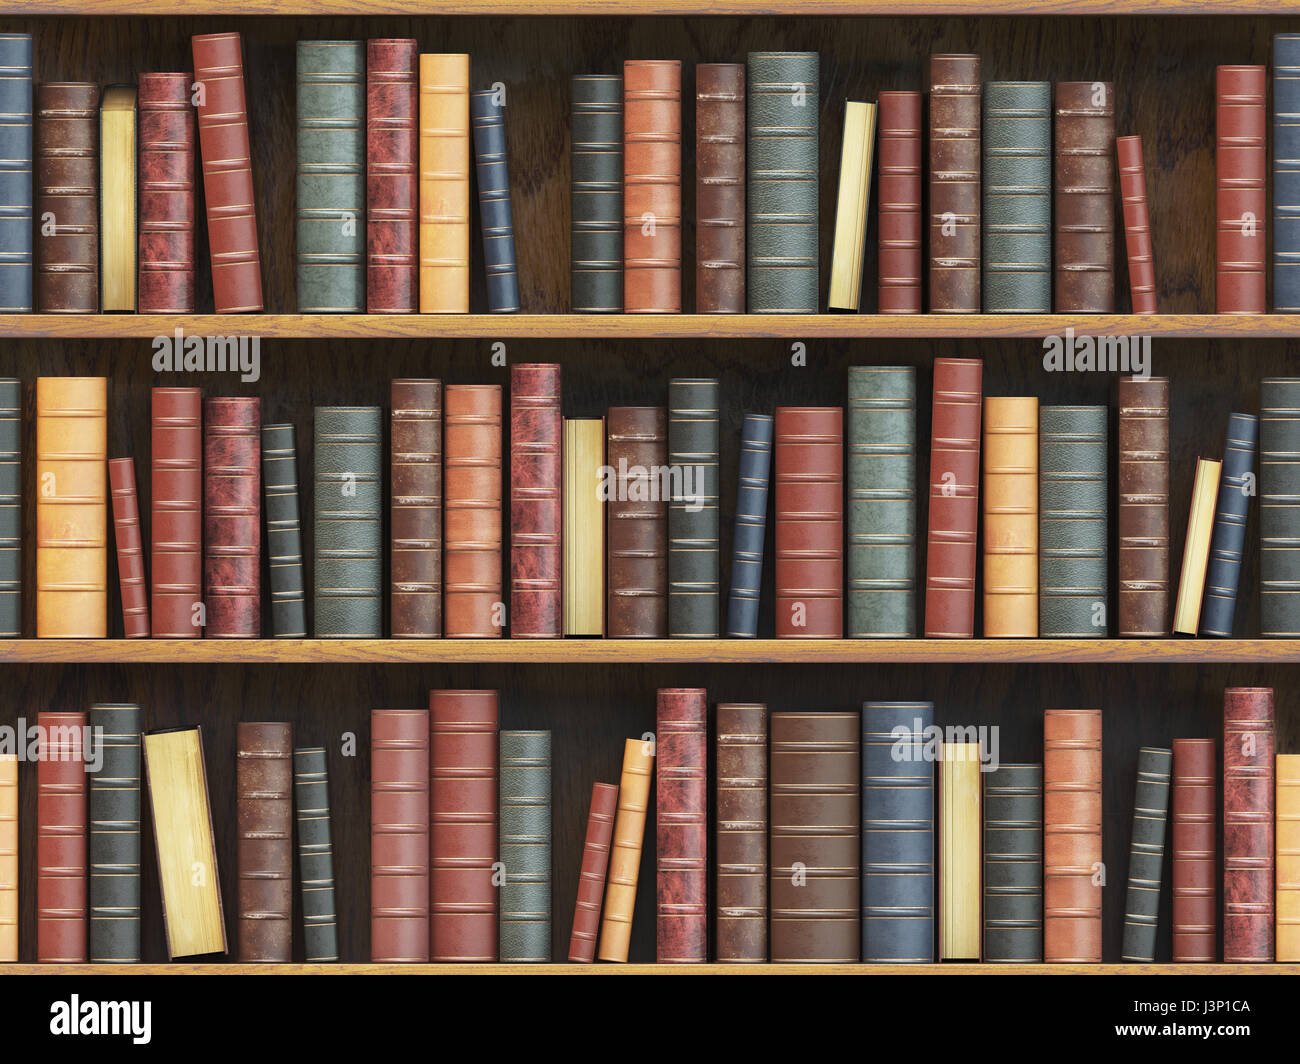 Vintage Books On Bookshelf Old Tiled Seamless Texture Background Vertically And Horizontally 3d Illustration